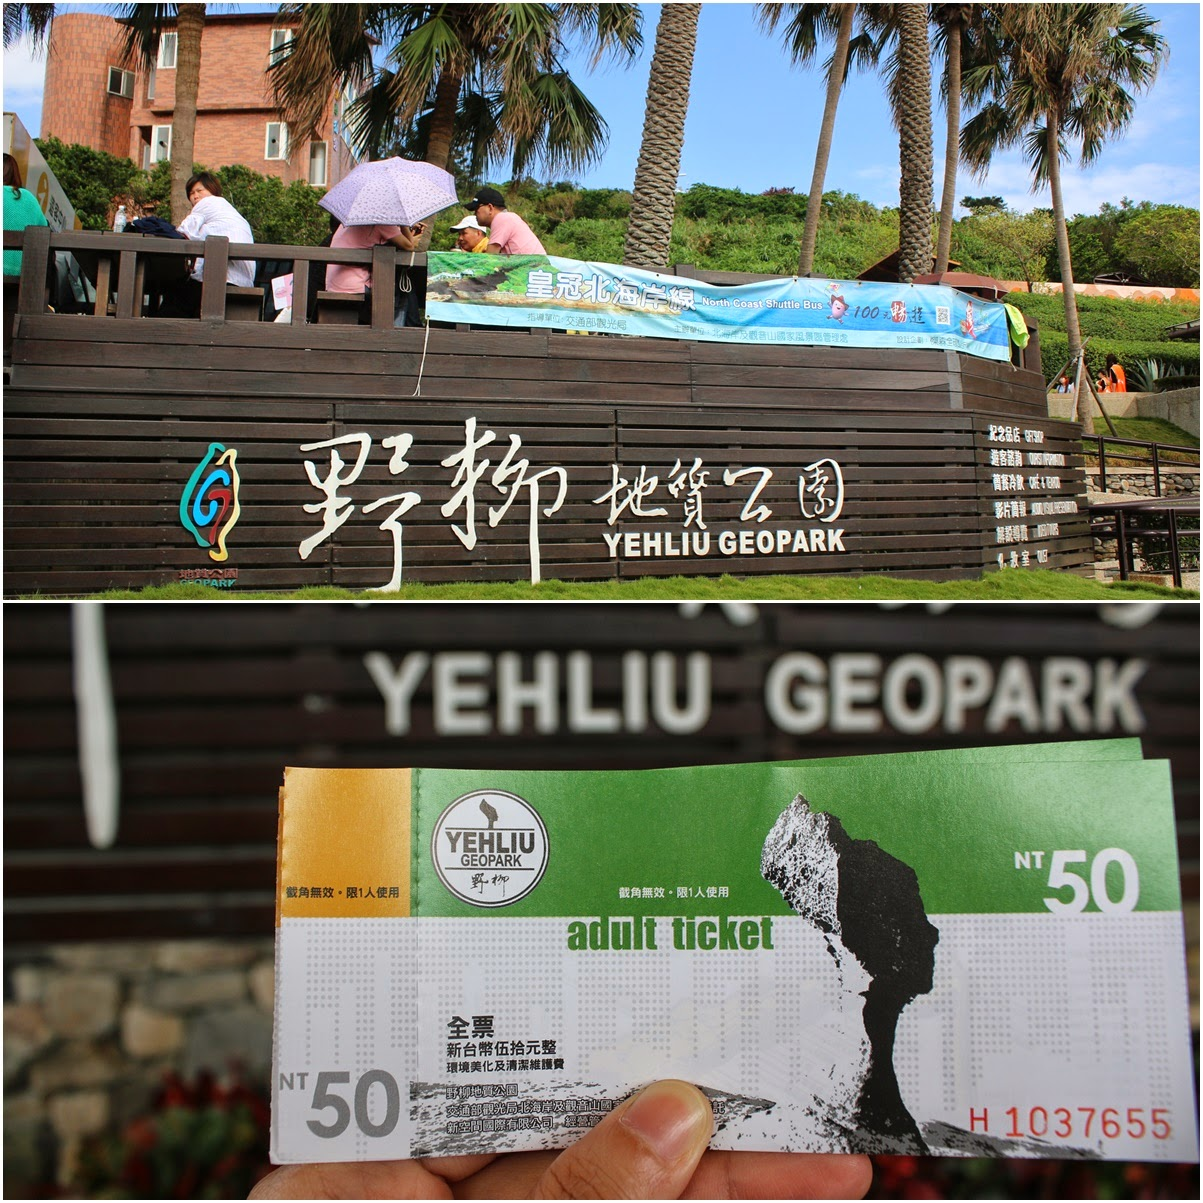 The main entrance of Yeh Liu Geopark in Taiwan